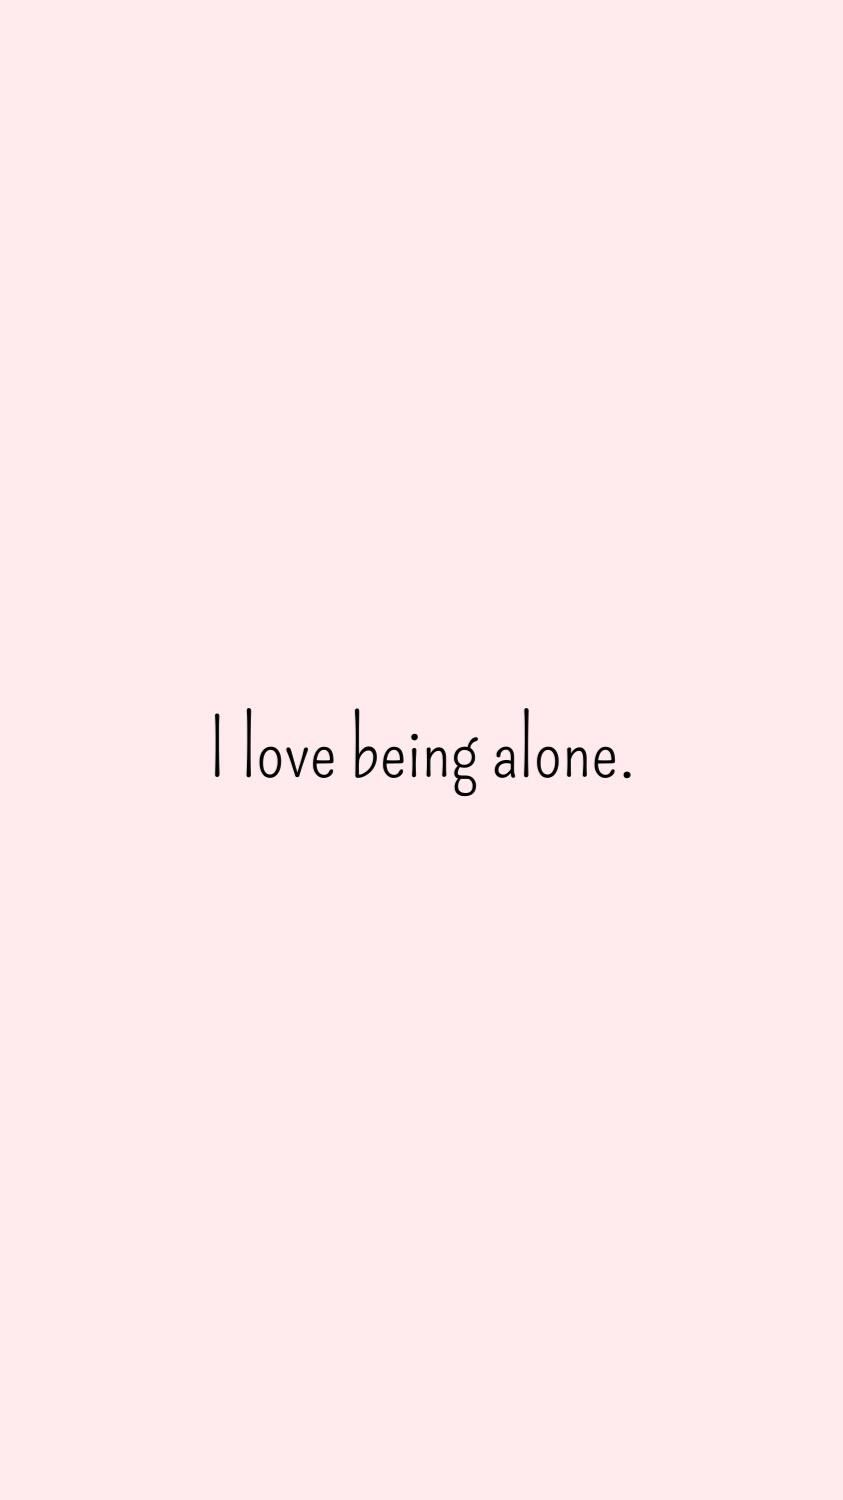 Being an introvert is so hard in this noisy world.